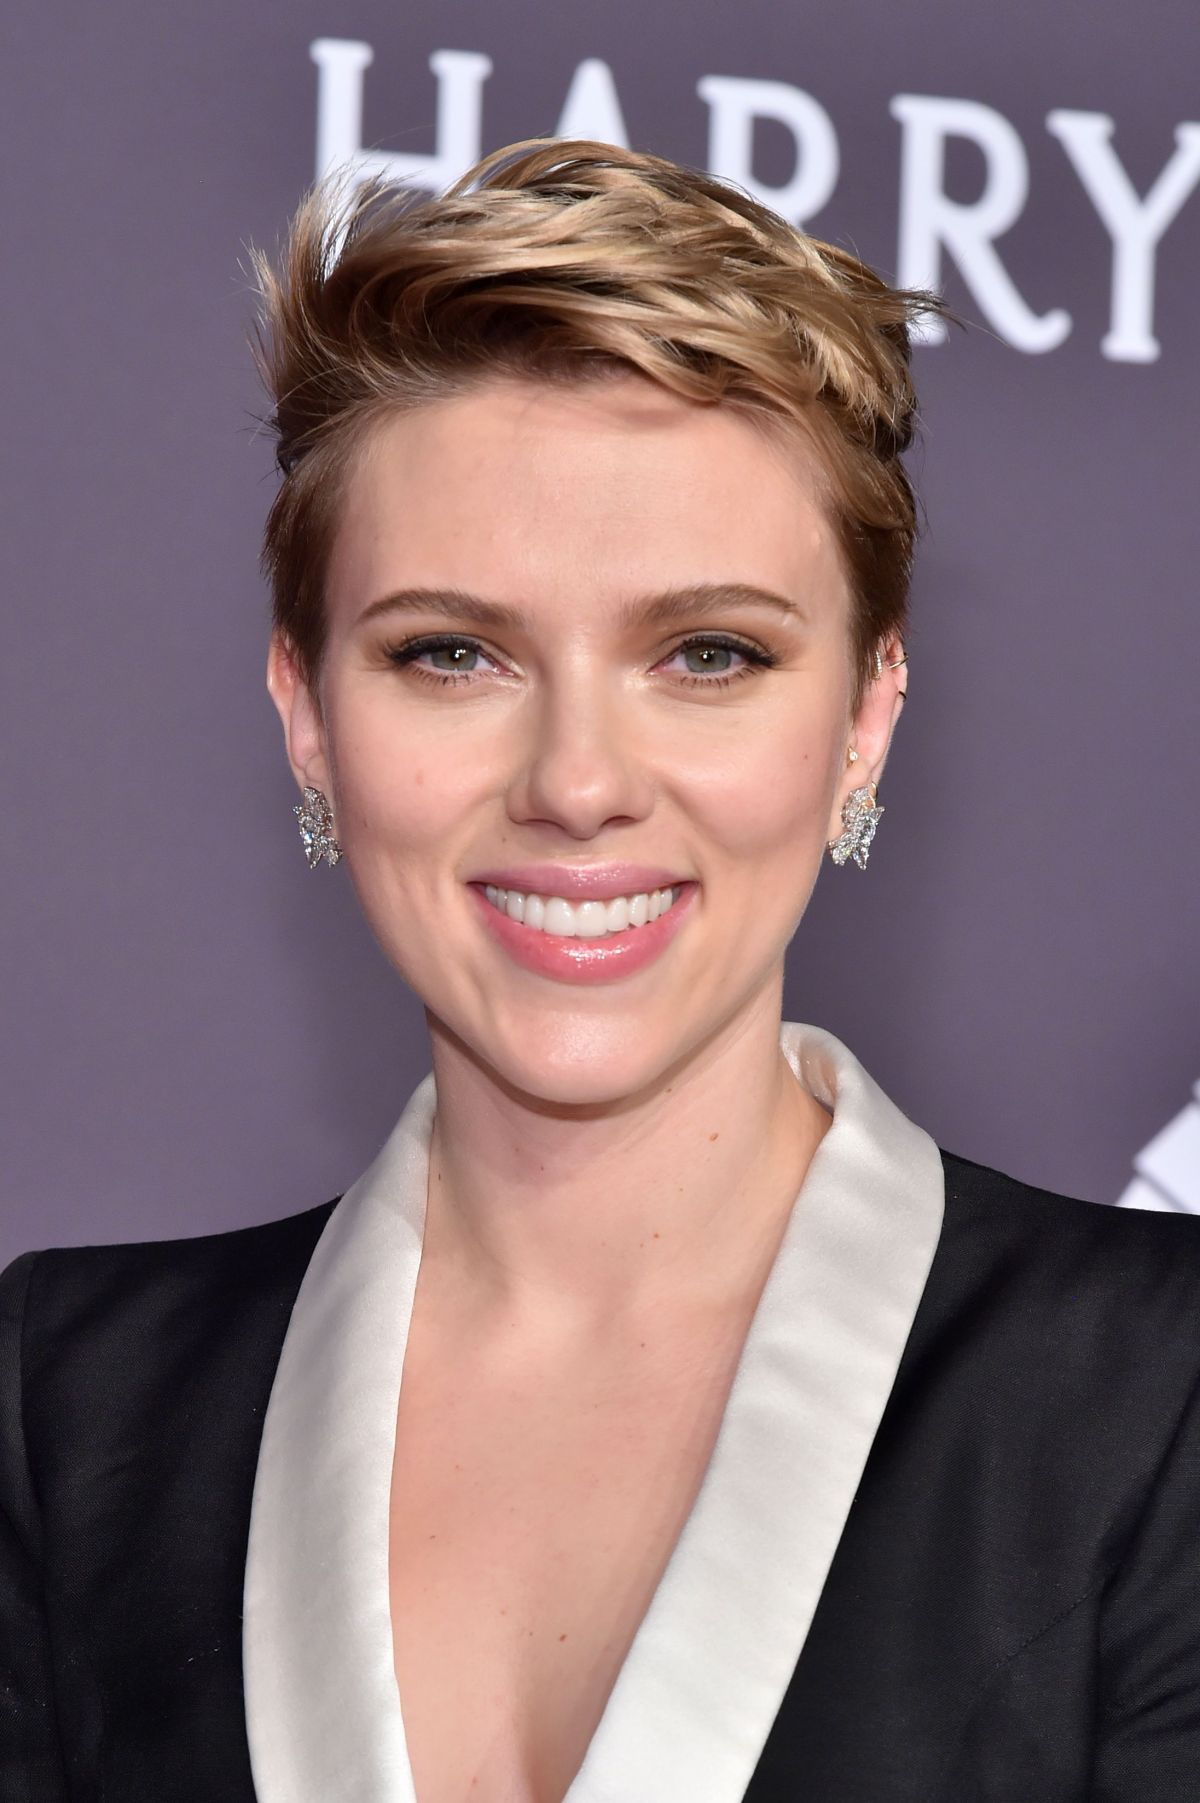 Scarlett Johansson At Amfar 2017 New York Gala 02 08 2017